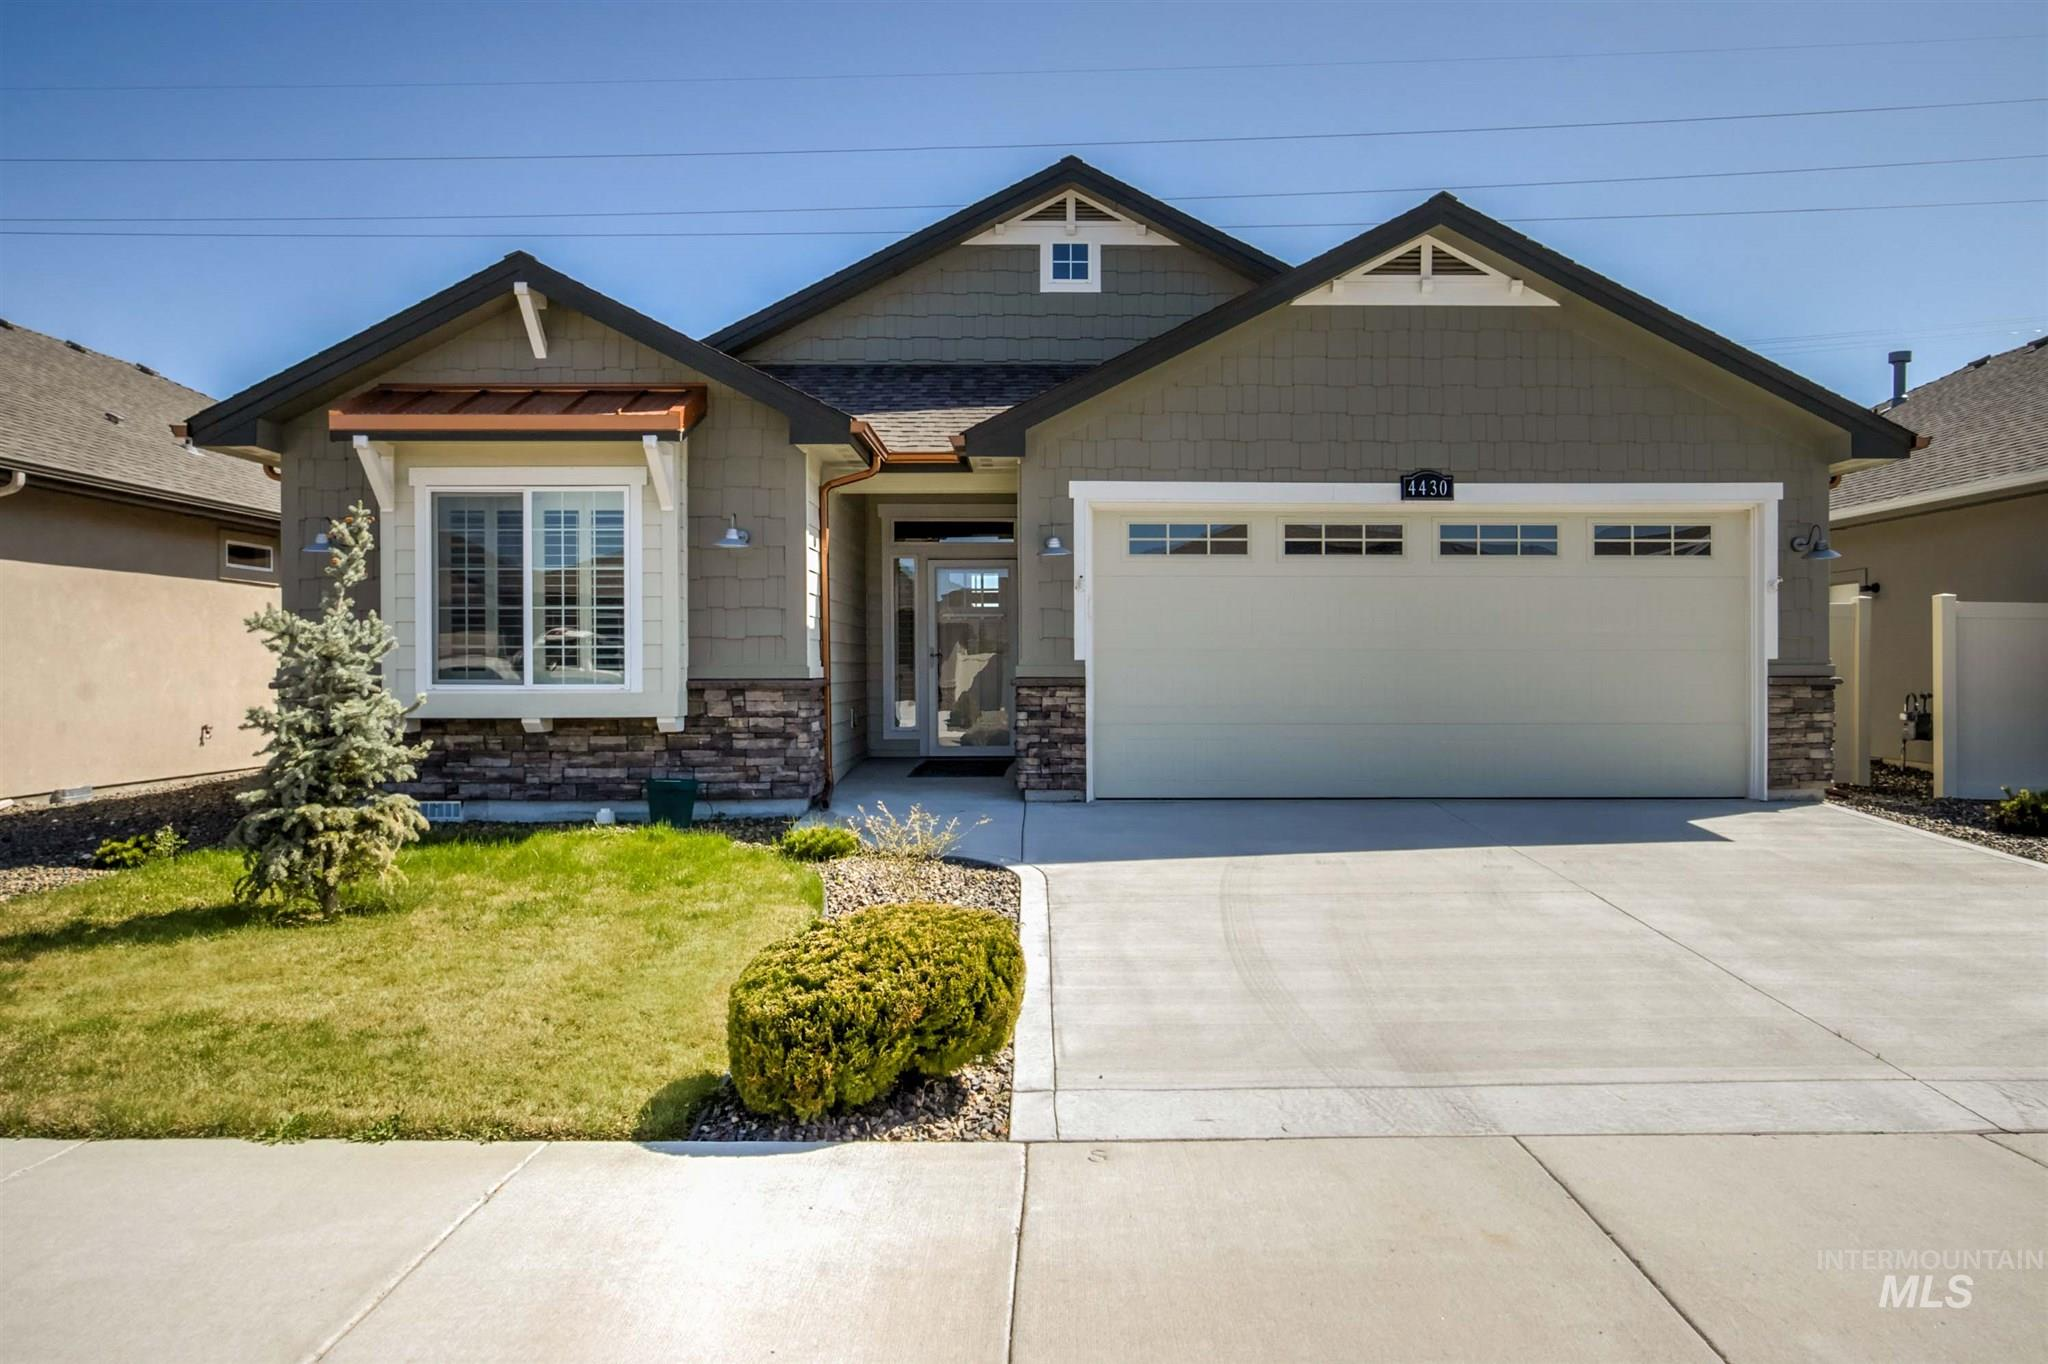 4430 S Staaten Ave Property Photo - Boise, ID real estate listing